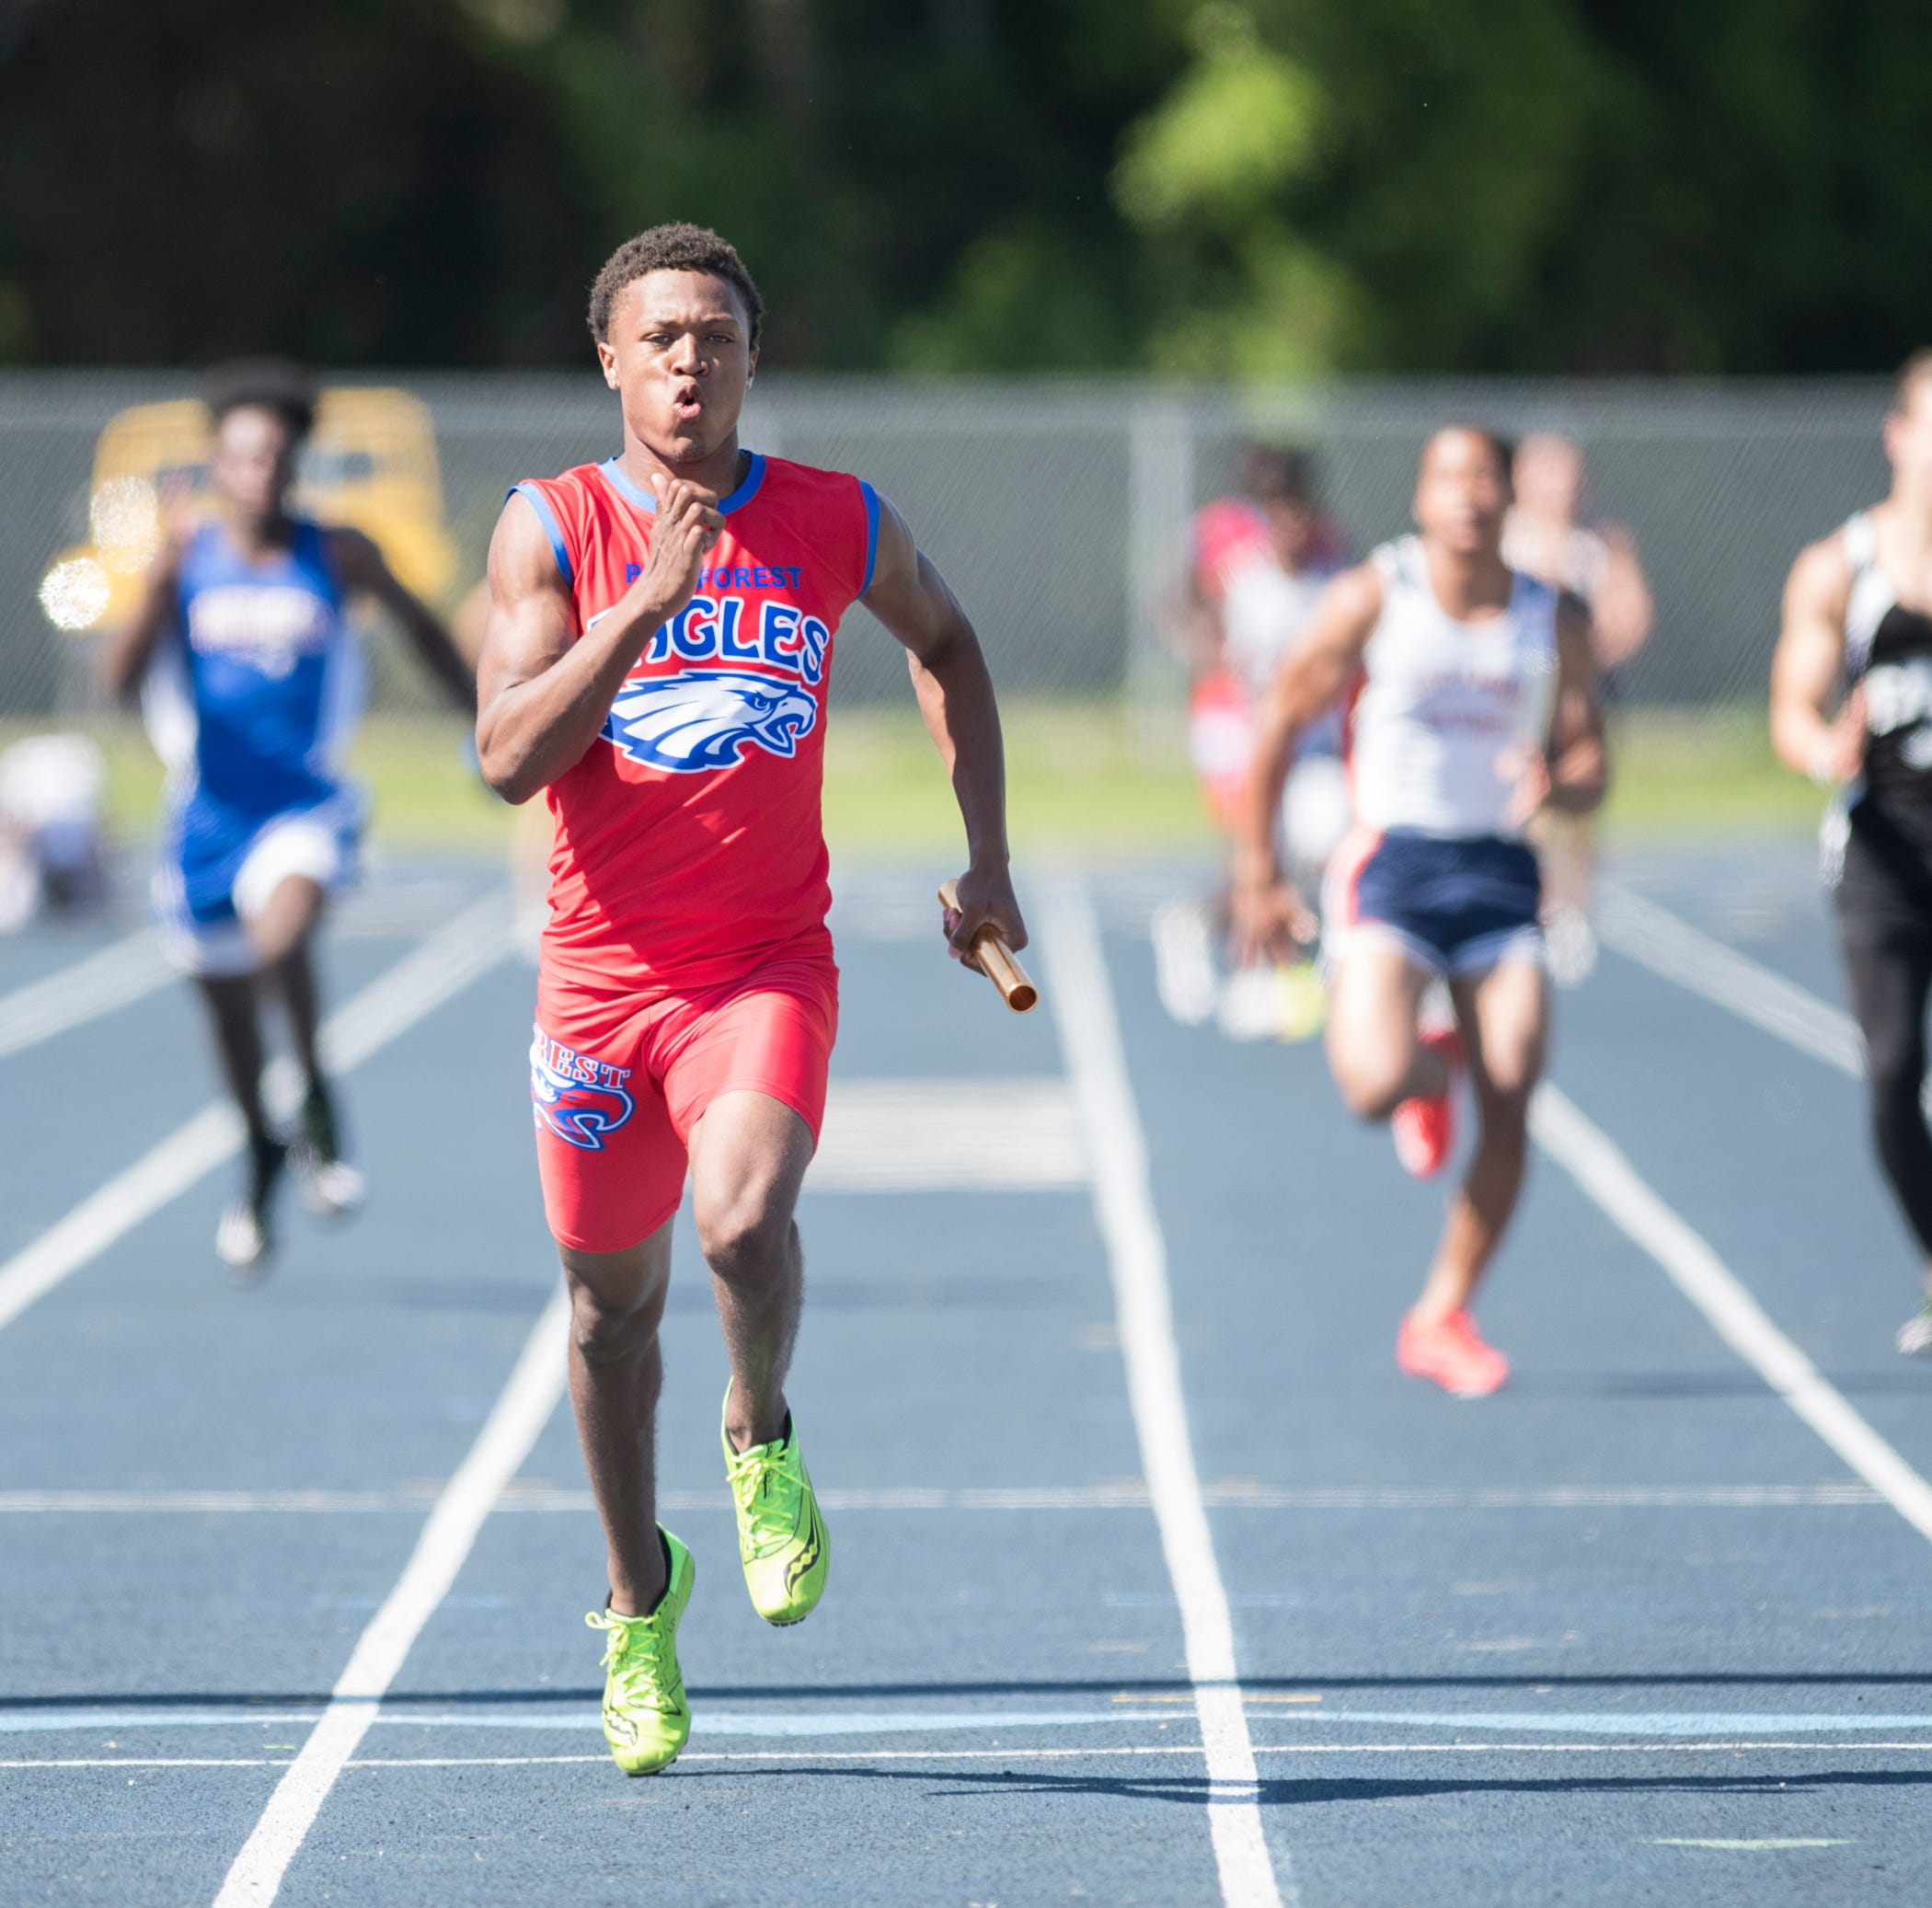 Which Pensacola athletes are contending for state track titles this weekend